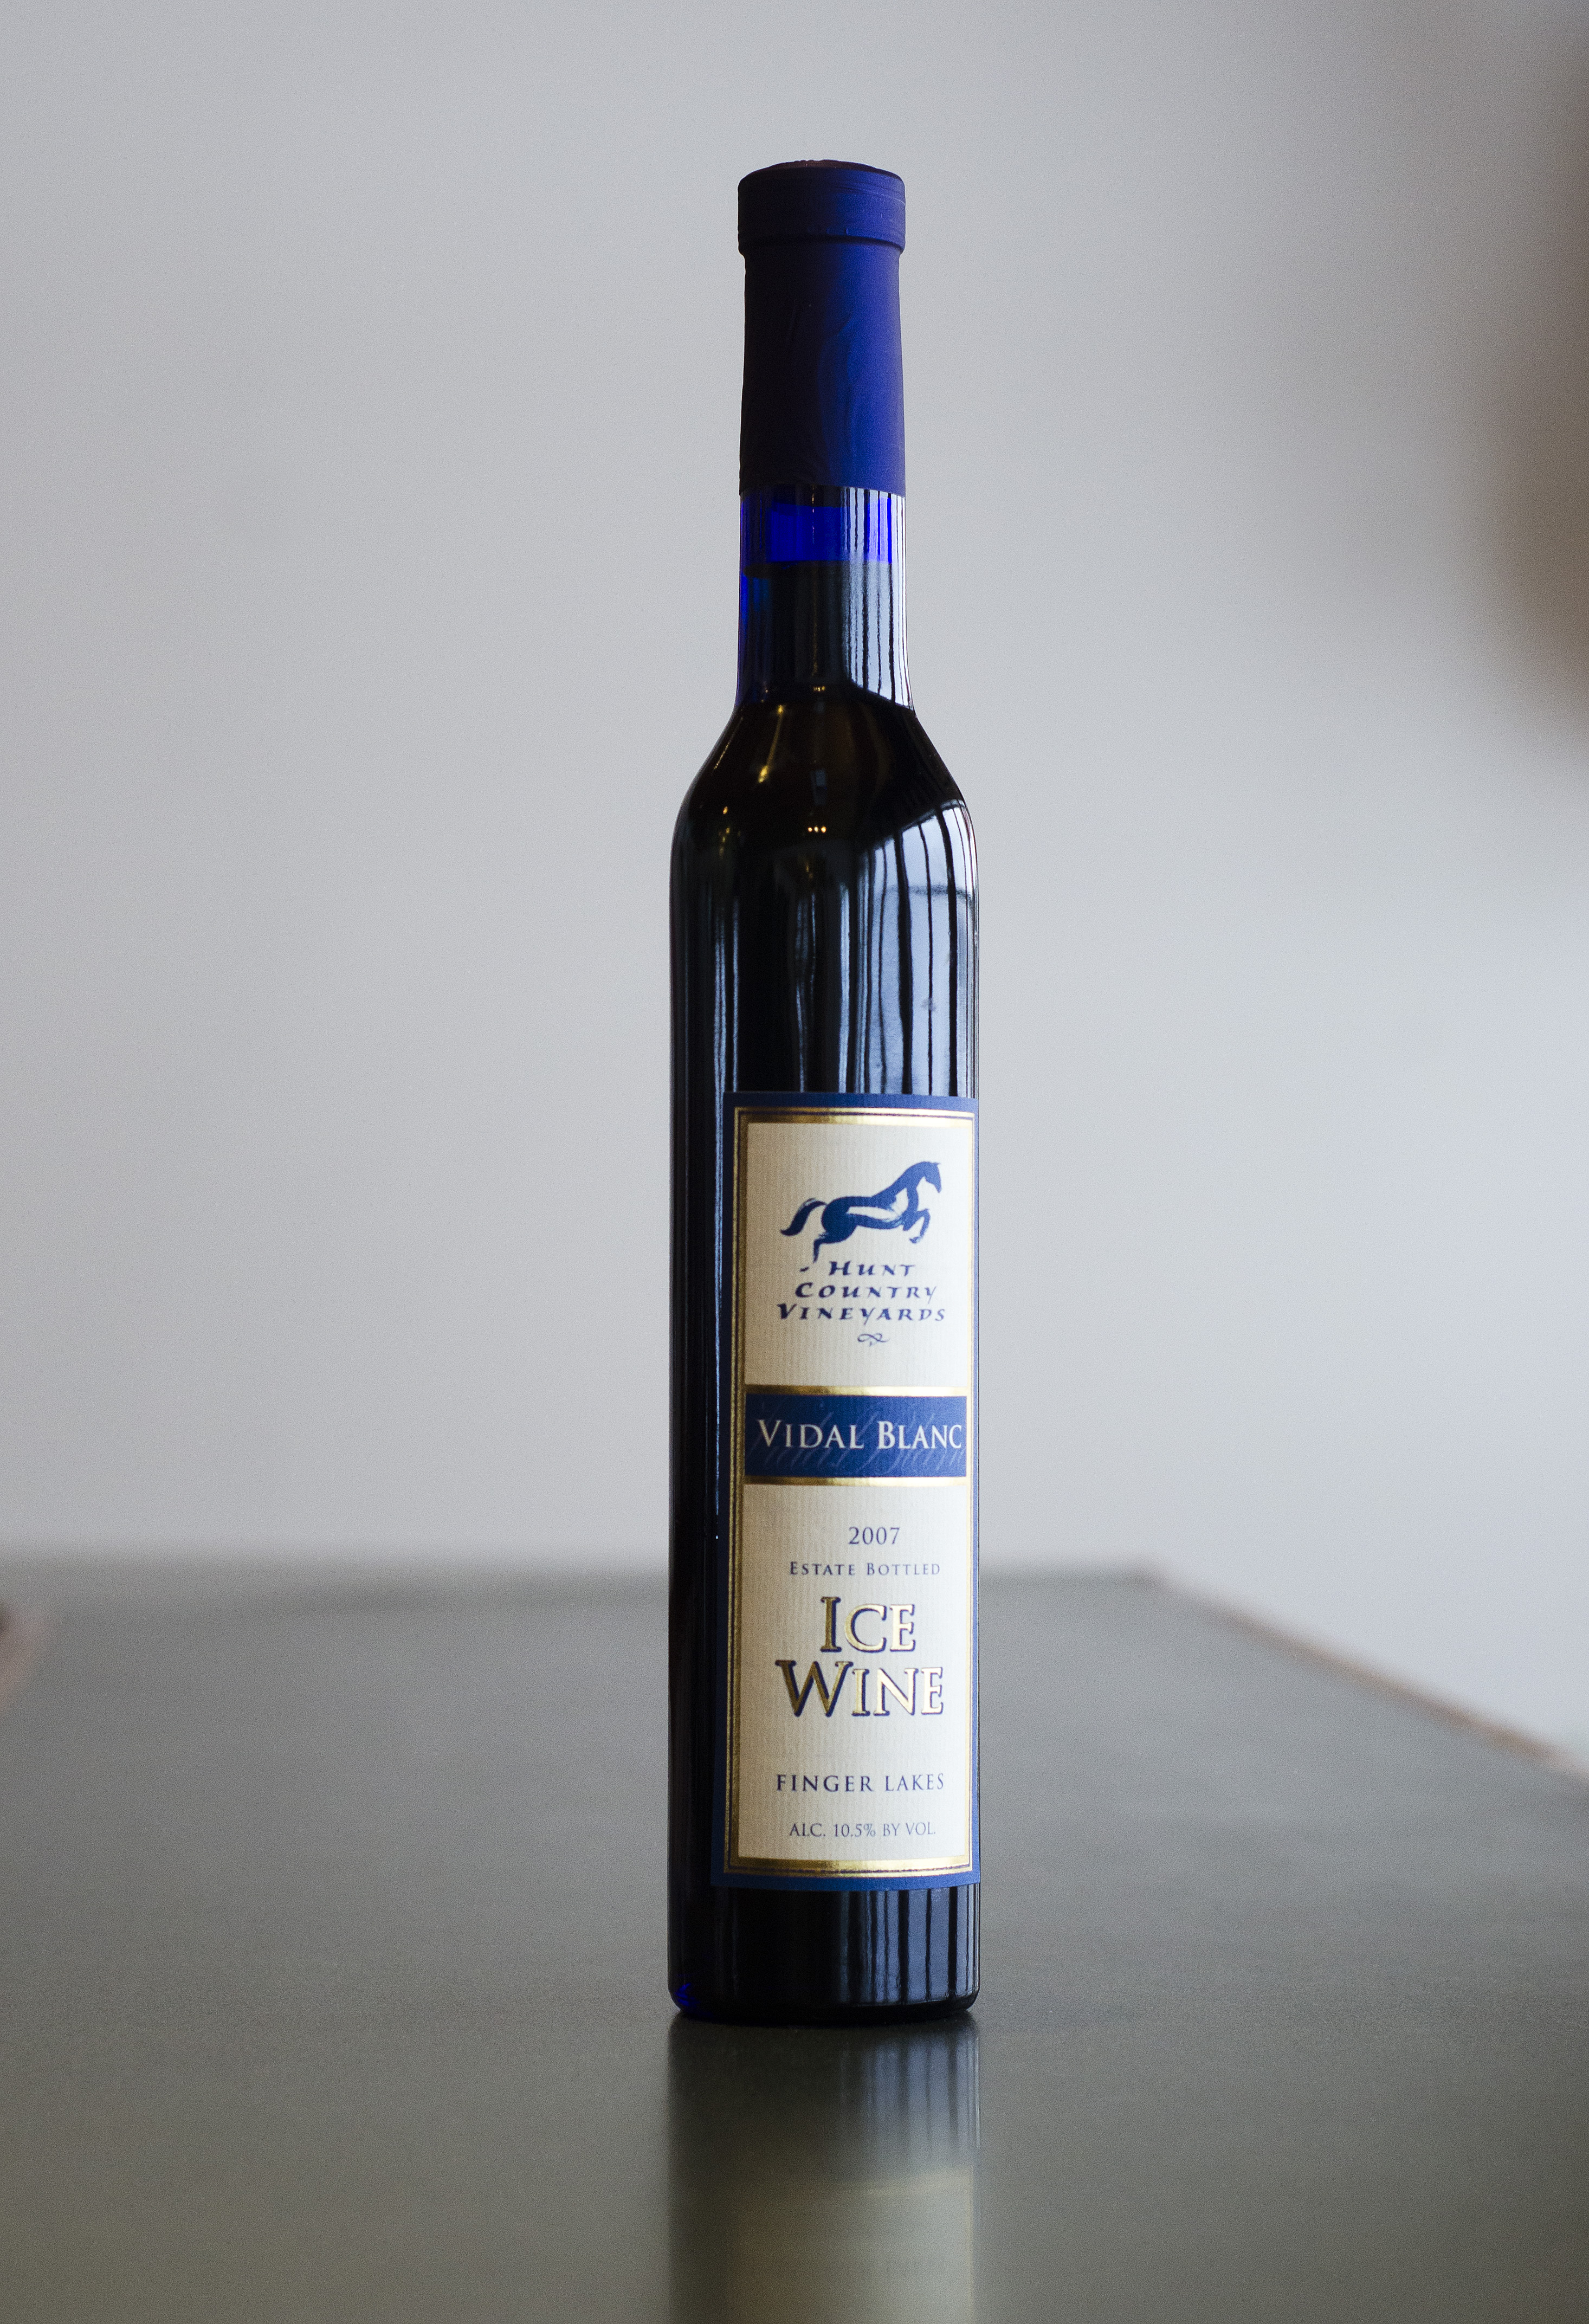 Image result for 2007 HUNT COUNTRY VINEYARDS VIDAL BLANC ICE WINE